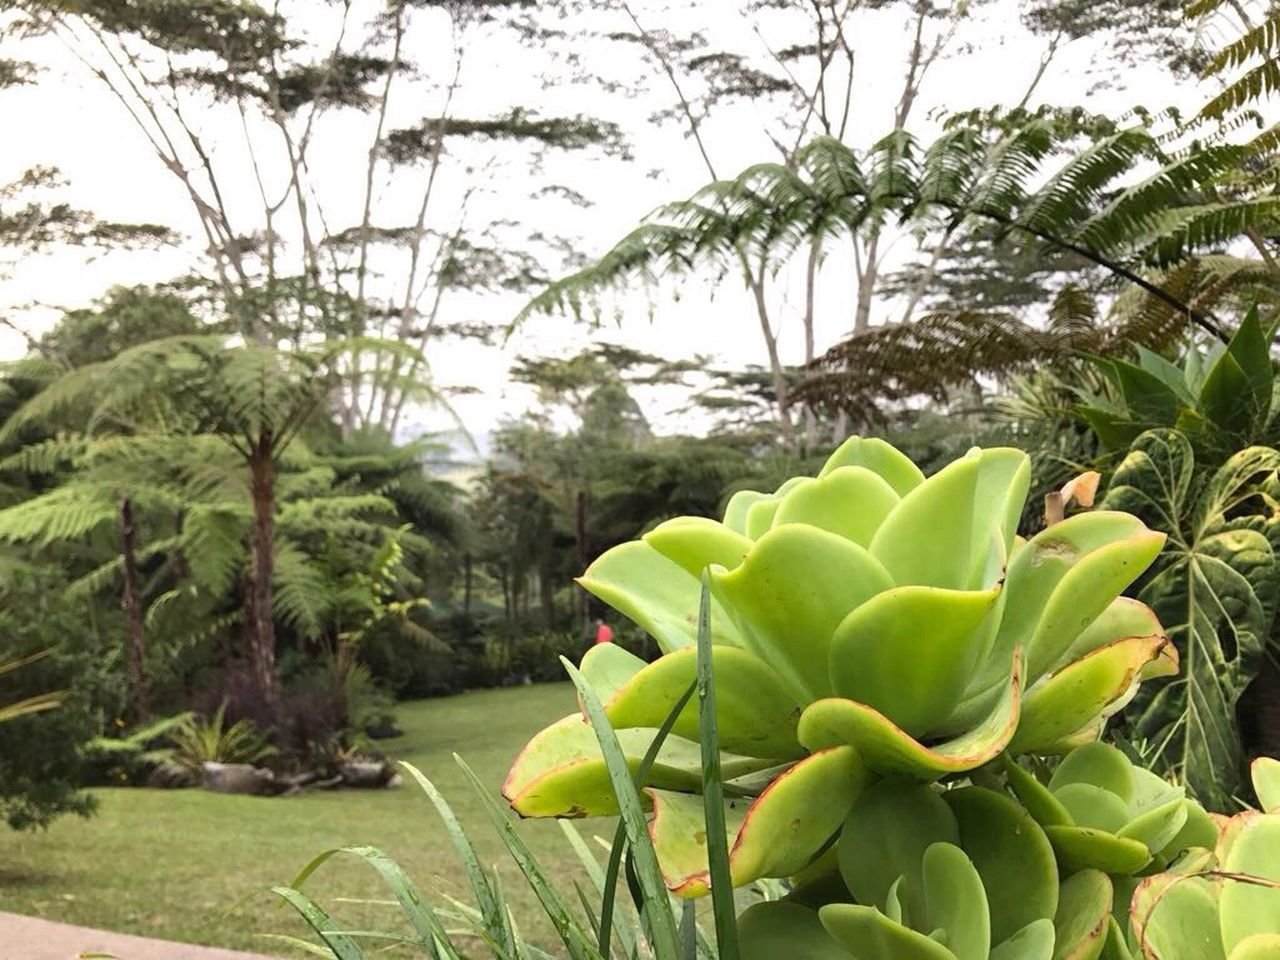 growth, green color, cactus, no people, plant, nature, day, tree, beauty in nature, outdoors, banana tree, freshness, prickly pear cactus, close-up